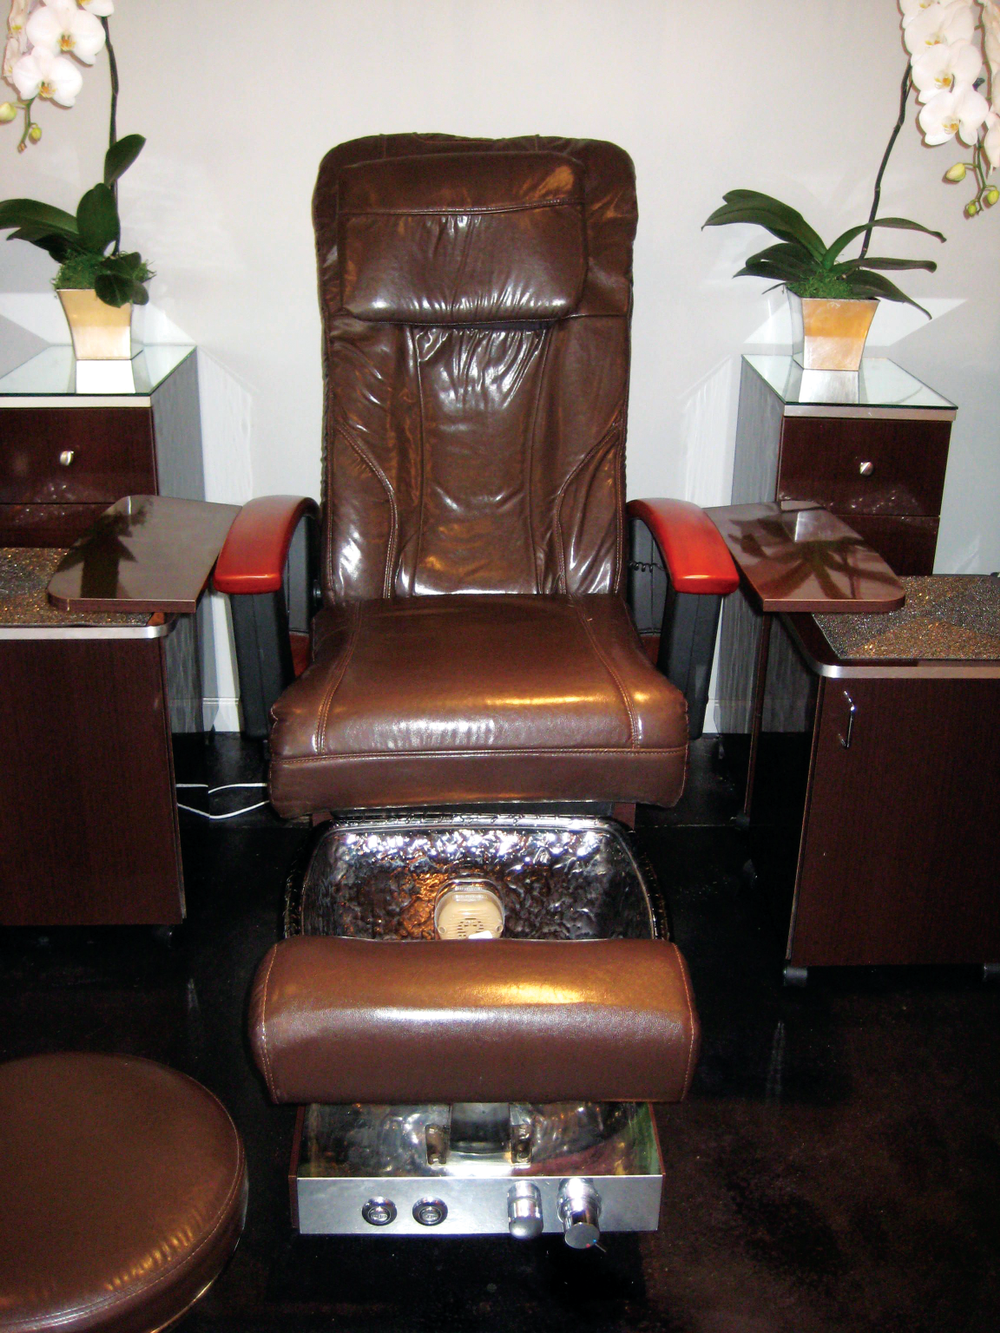 <p><strong>Camtu&rsquo;s Storage Solutions:&nbsp;</strong>All supplies at Blossom are concealed, making the entire salon aesthetically pleasing and organized. Instead of having baskets of exposed cuticle oil, acetone, cotton, and&nbsp;instruments (that could collect dust or look messy) Nguyen chose closed caddies for her storage. The pedi caddy shown here stores pedicure&nbsp;necessities; plus it doubles as a small table for the&nbsp;manicurist.</p>